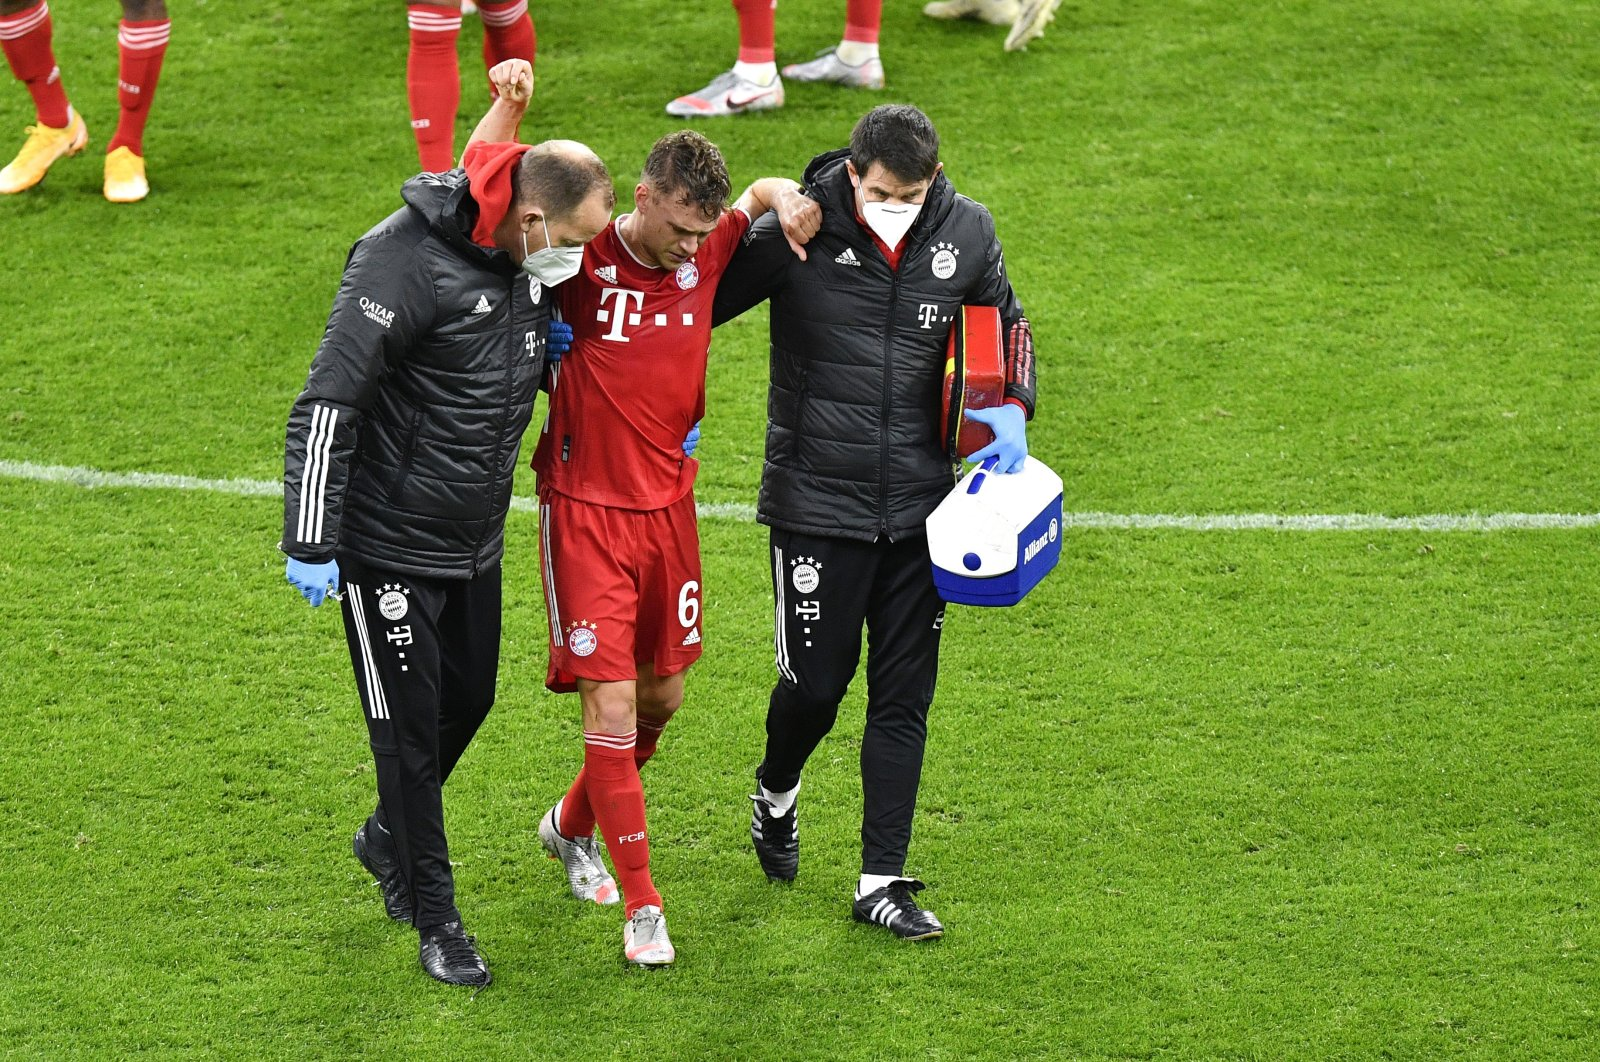 Bayern Munich's Joshua Kimmich (C) leaves the pitch as a substitute after sustaining an injury during a Bundesliga match against Borussia Dortmund, in Dortmund, Germany, Nov. 7, 2020. (Reuters Photo)